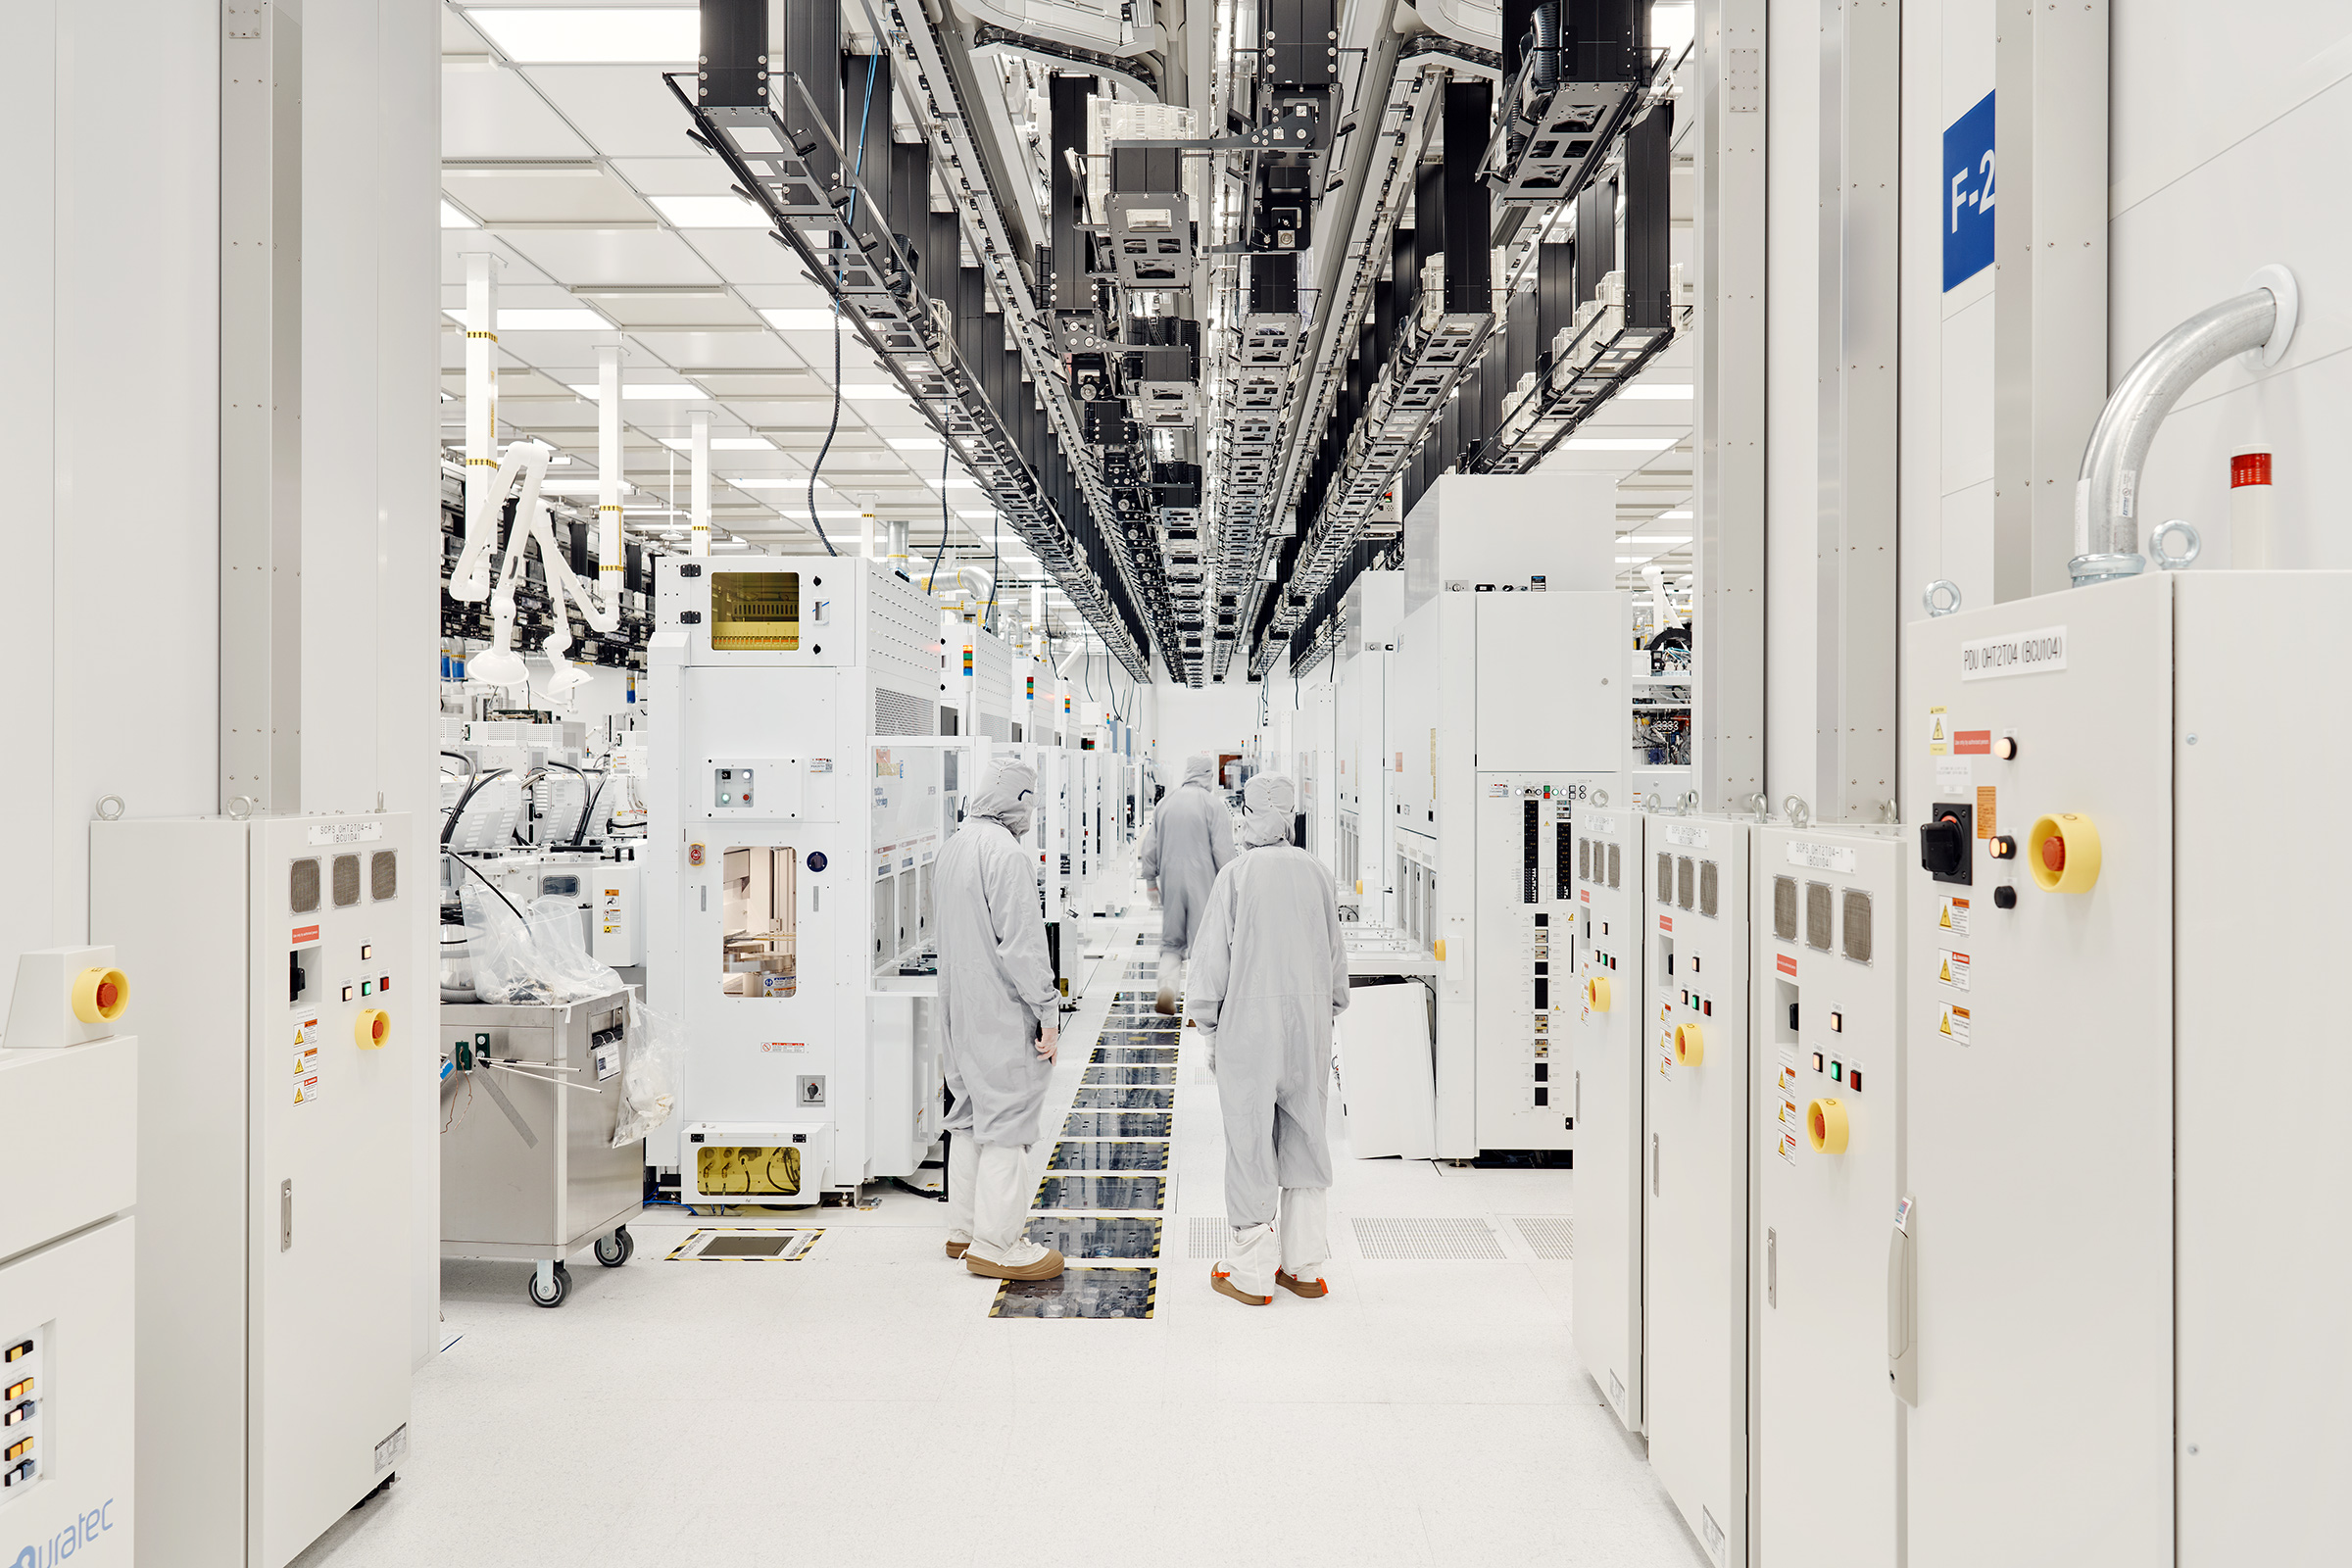 The Fabrication Cleanroom, containing all process tools for the Fab 8 at GlobalFoundries